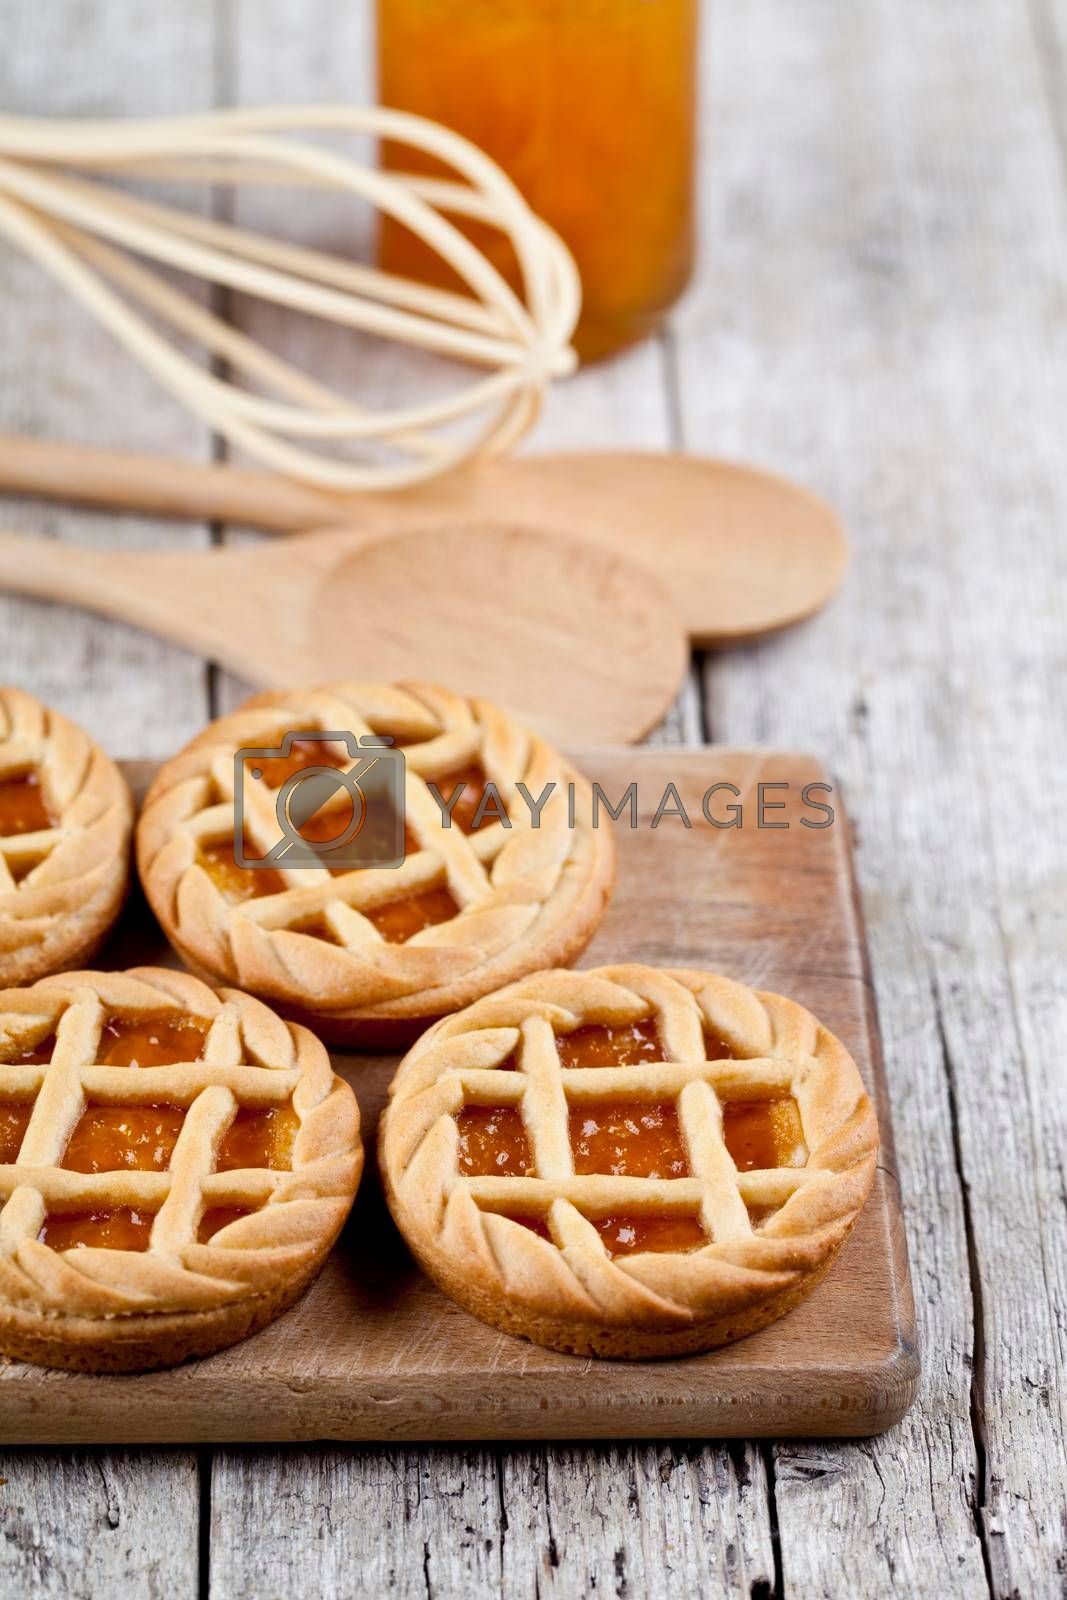 Fresh baked tarts with marmalade or apricot jam filling and on cutting board and kitchen bakery utensil on on rustic wooden table background.